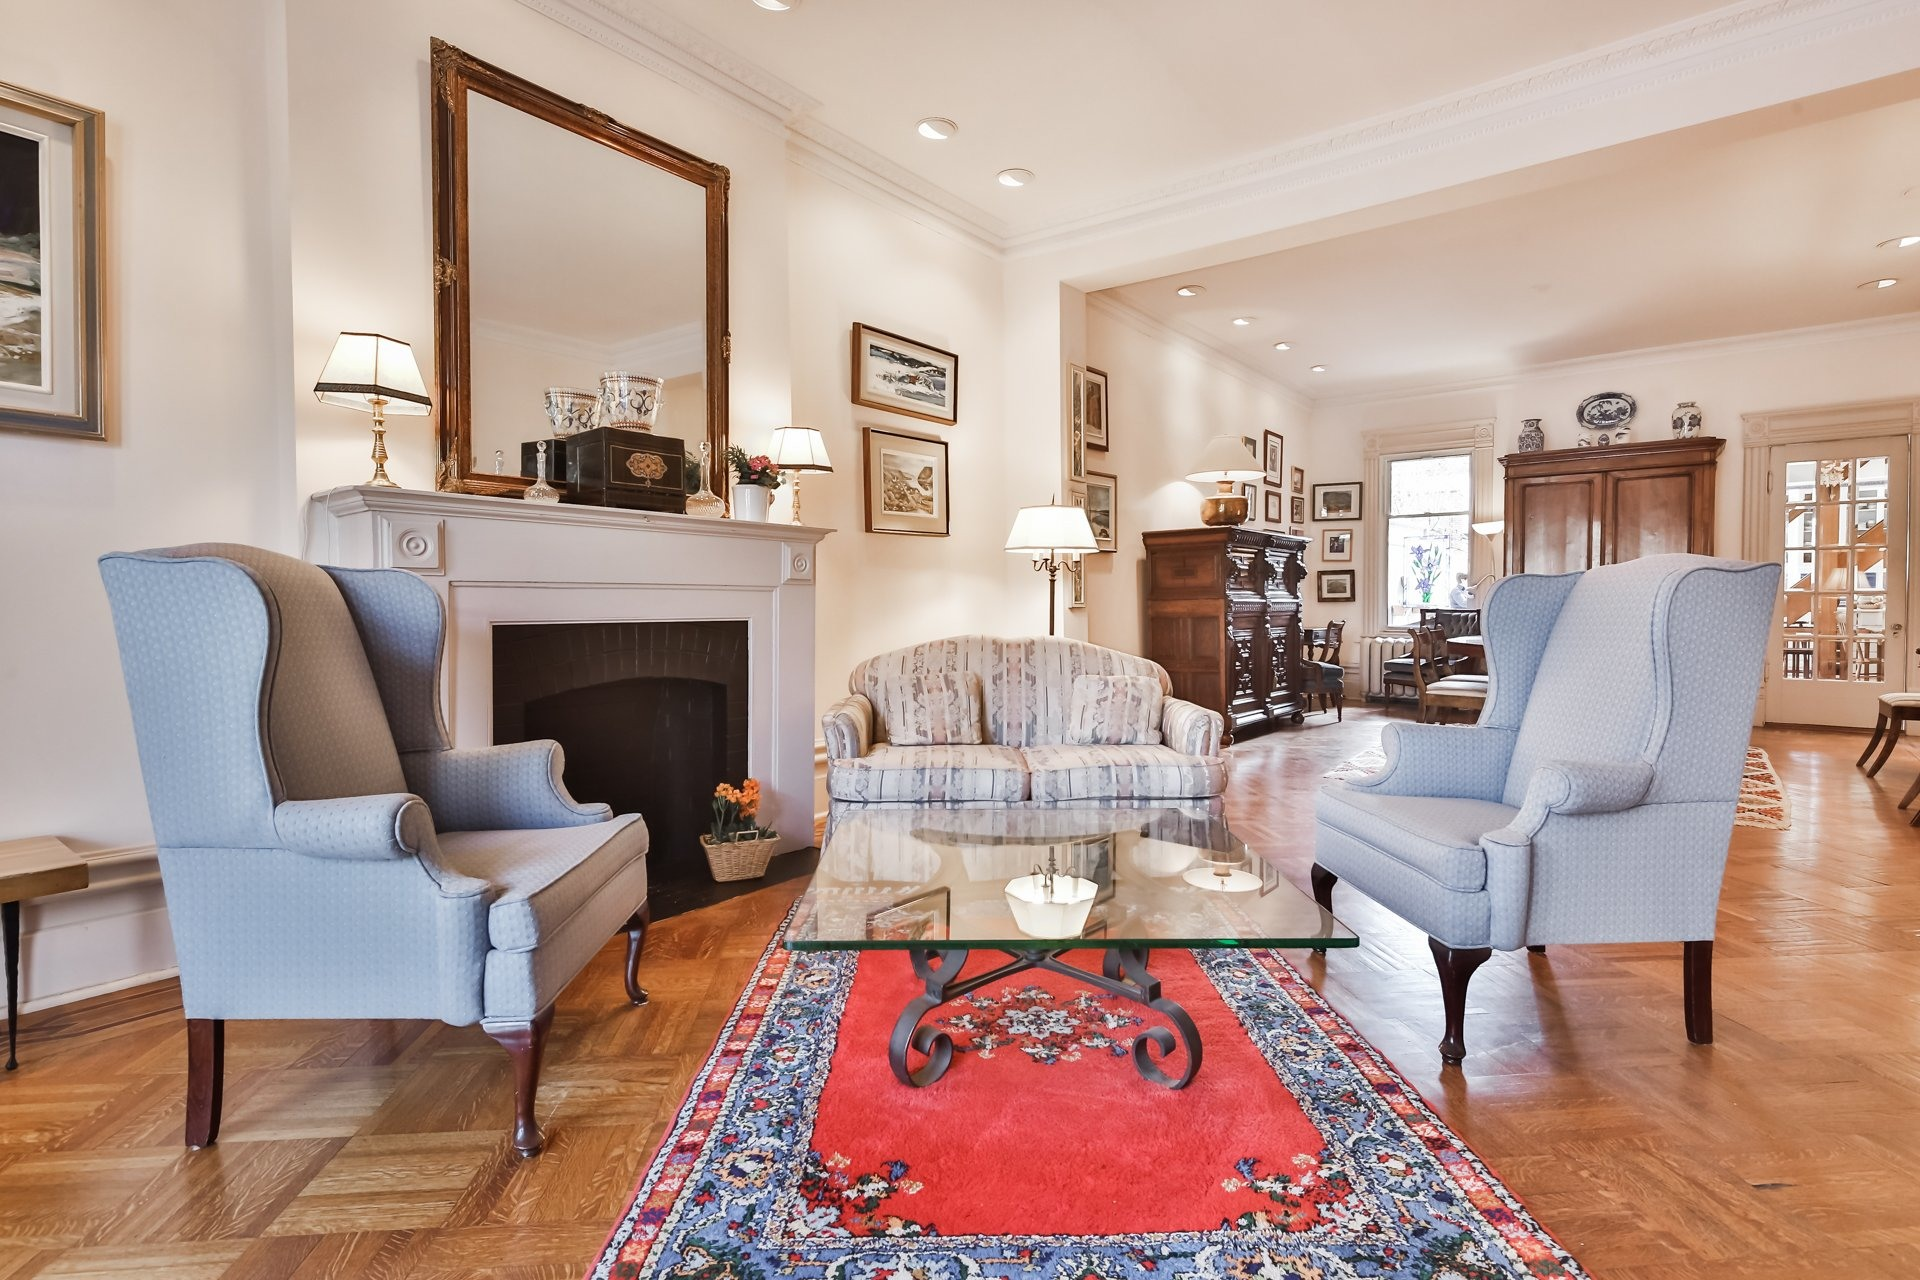 image 5 - House For sale Westmount - 12 rooms